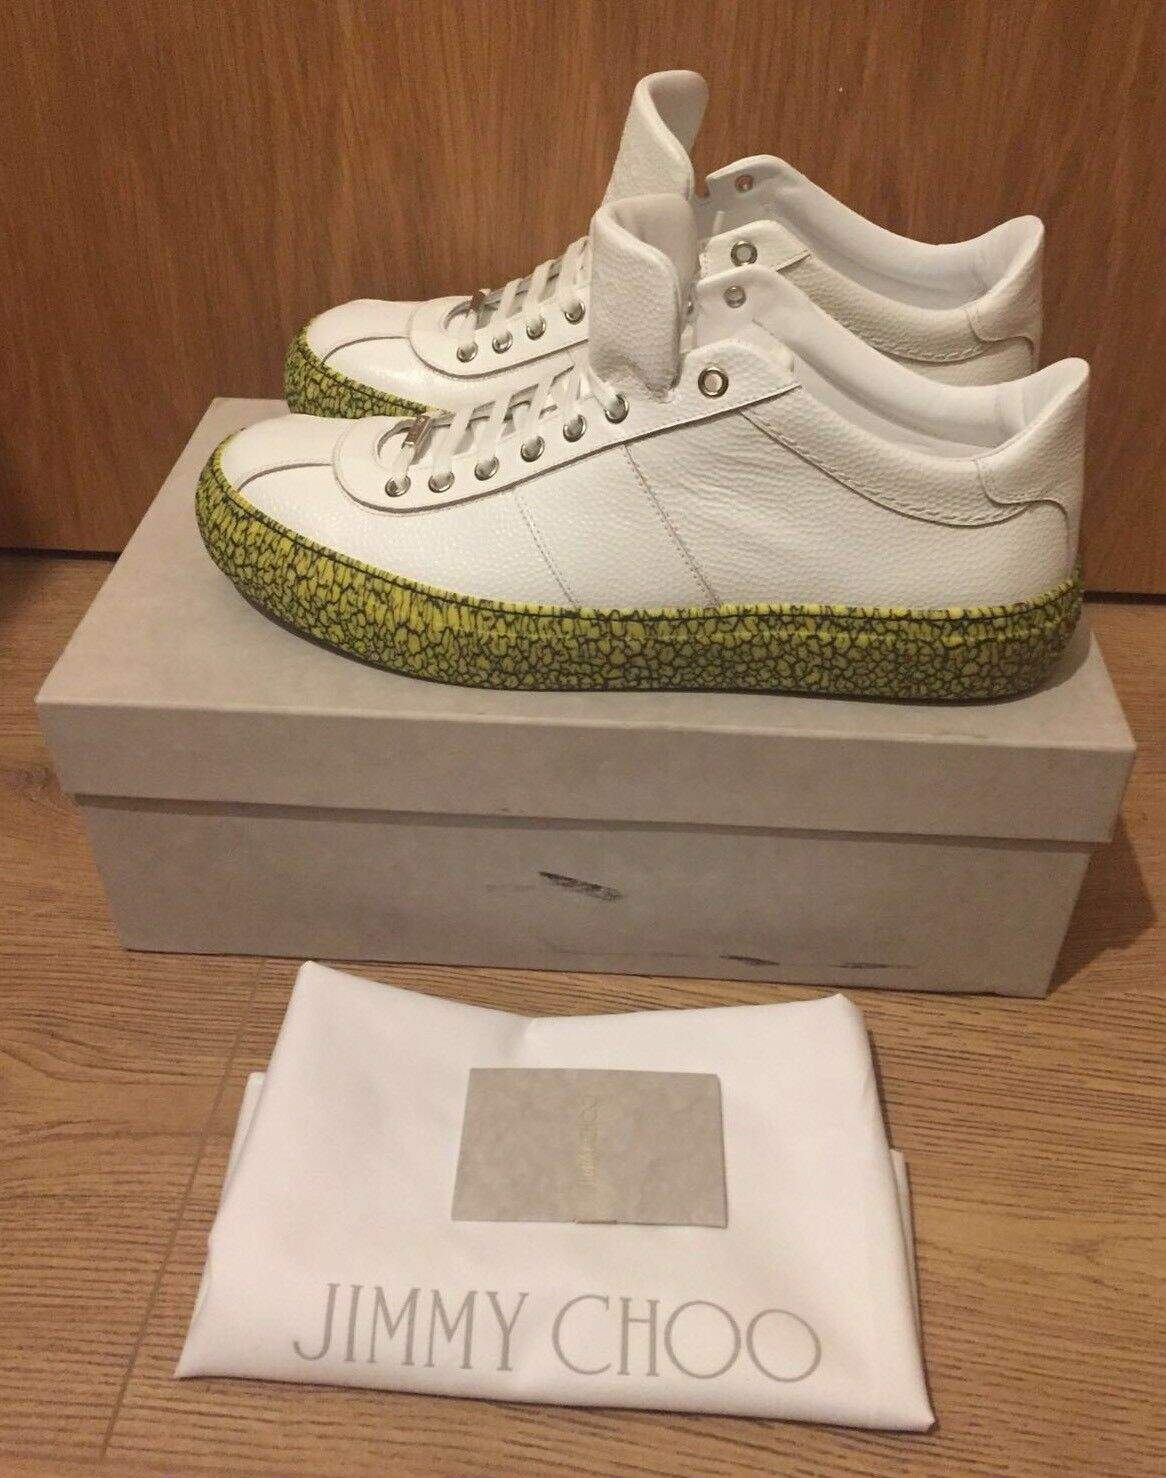 Jimmy Choo White Portman Embossed Leather Trainers UK10 RRP